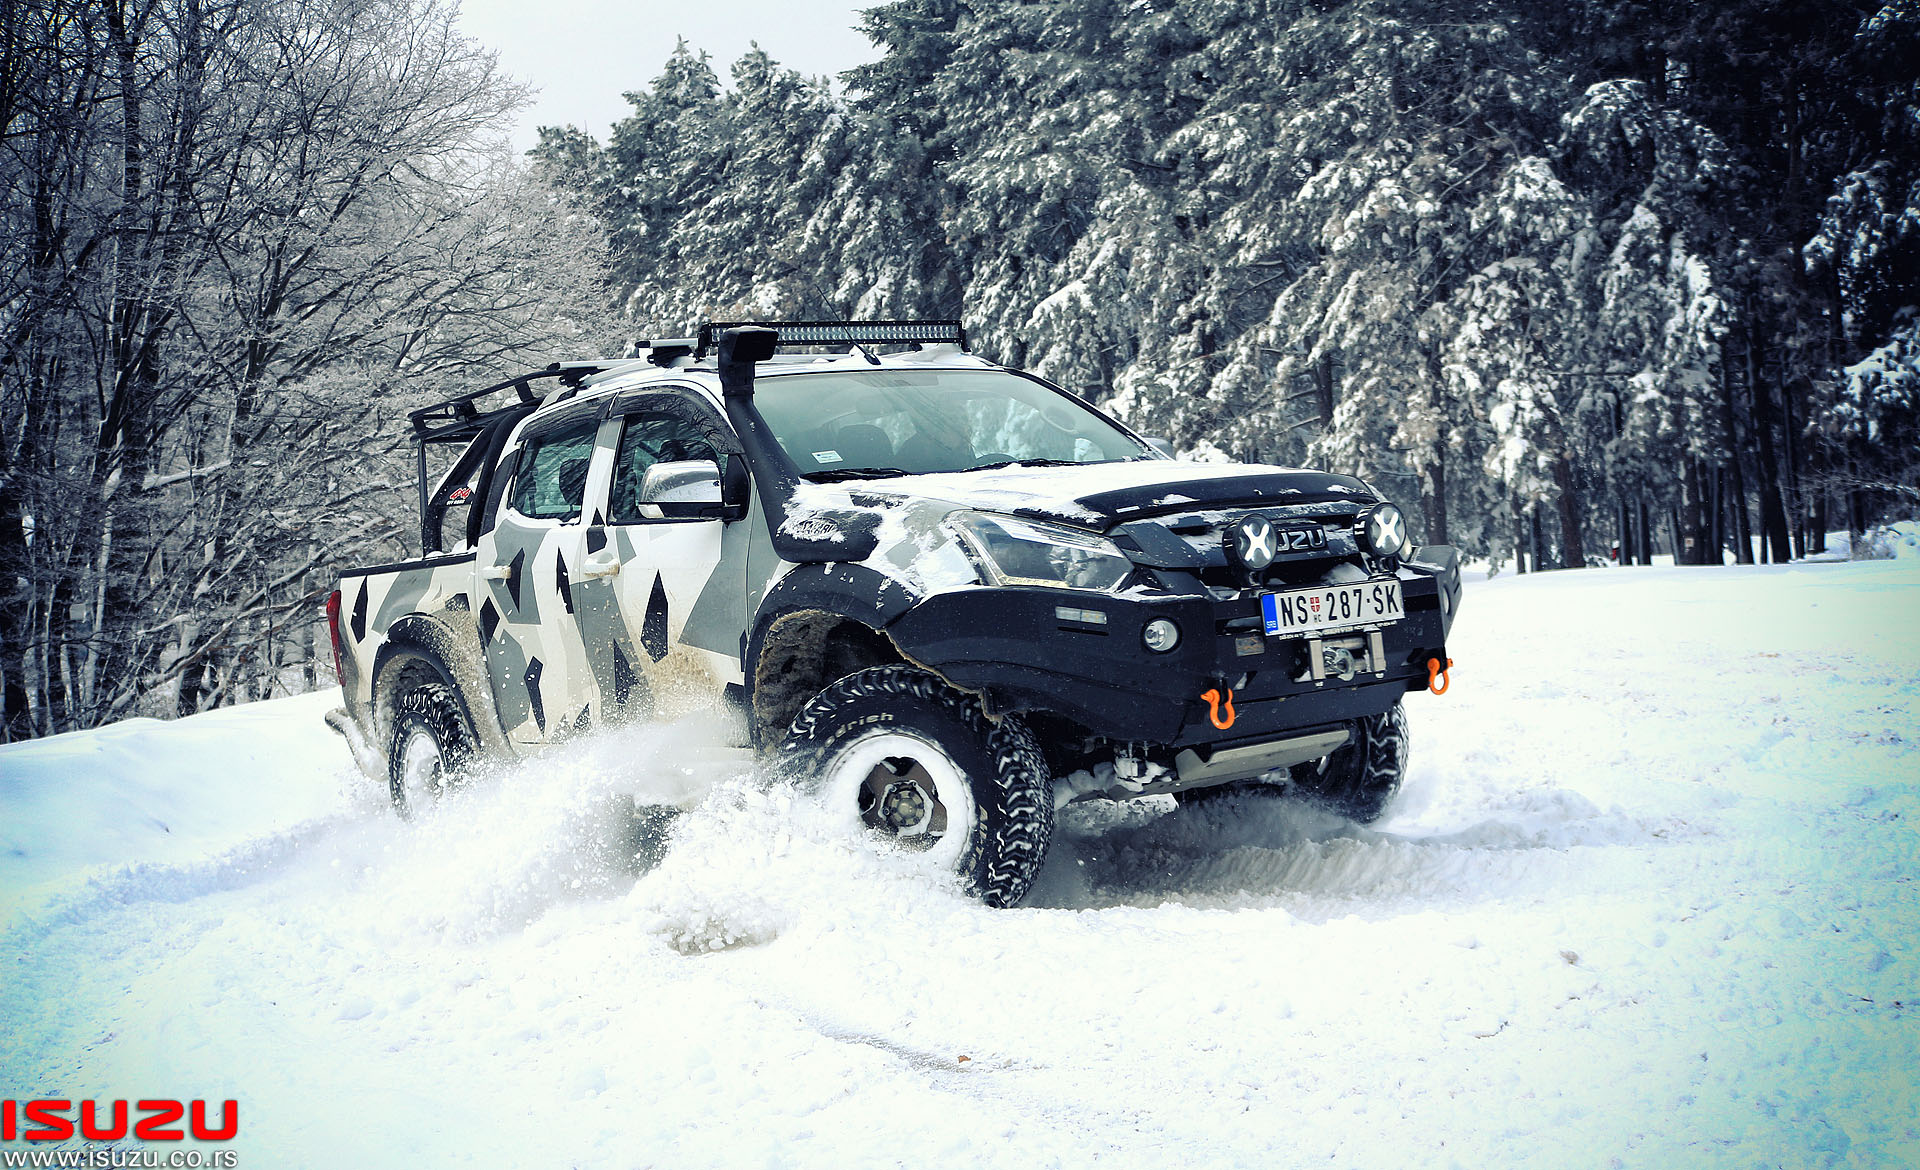 isuzu d-max monster truck adventure